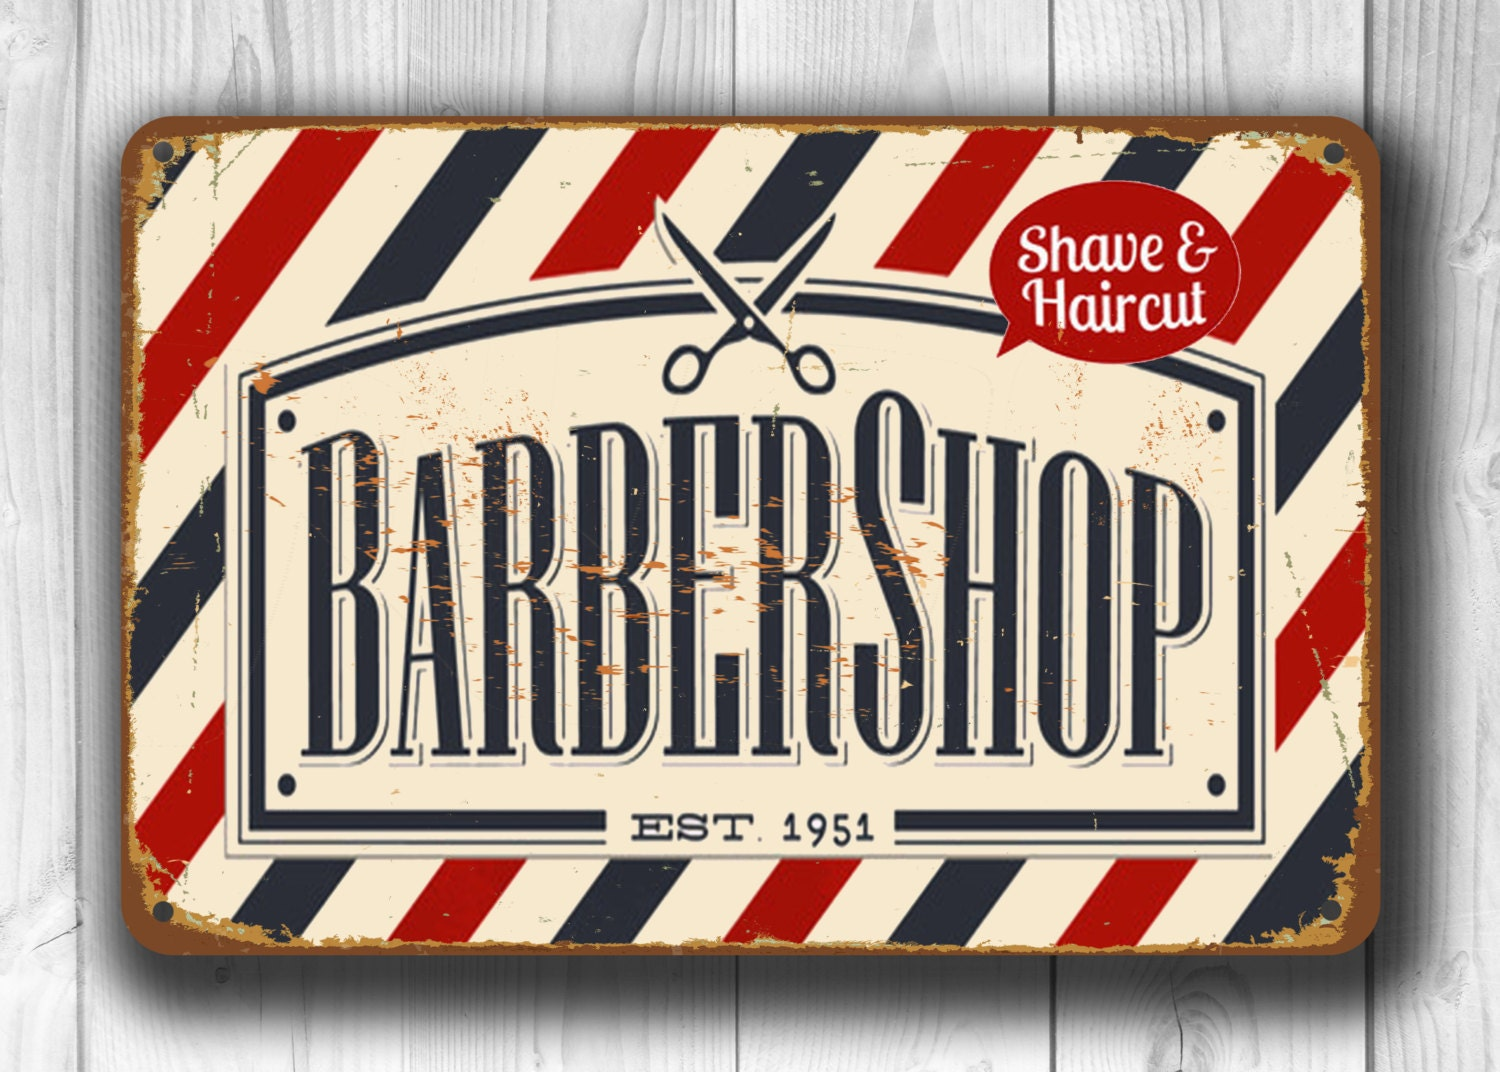 Barber Shop Sign Barber Shop Signs Vintage Style Barber Shop. Fall Aesthetics Signs. 10 Year From Now Signs Of Stroke. Swollen Gland Signs. Snowman Signs Of Stroke. Railway Crossing Signs Of Stroke. Geriatric Depression Signs. Healthy Signs Of Stroke. Represented Animal Signs